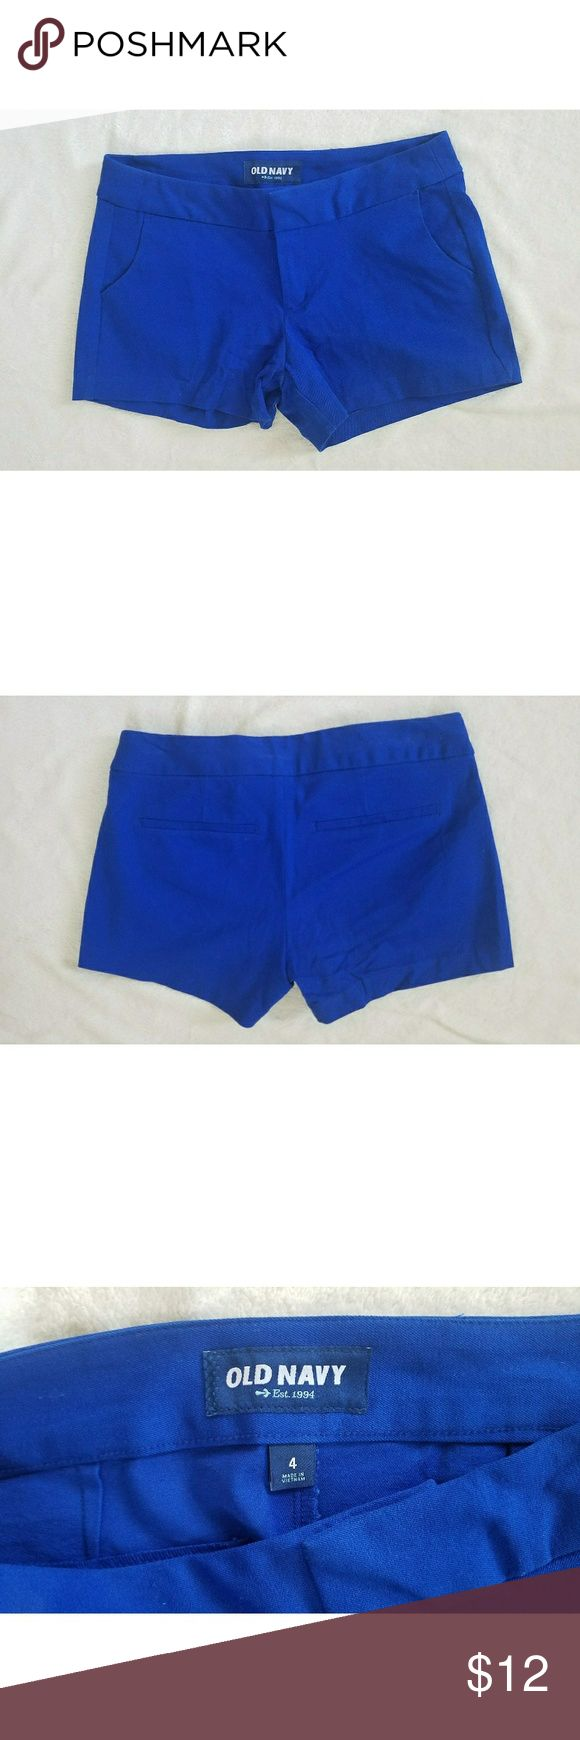 Old Navy Royal Blue Shorts Old Navy shorts size 4! Royal blue color. They're used, but show no signs of wear and no flaws! Old Navy Shorts